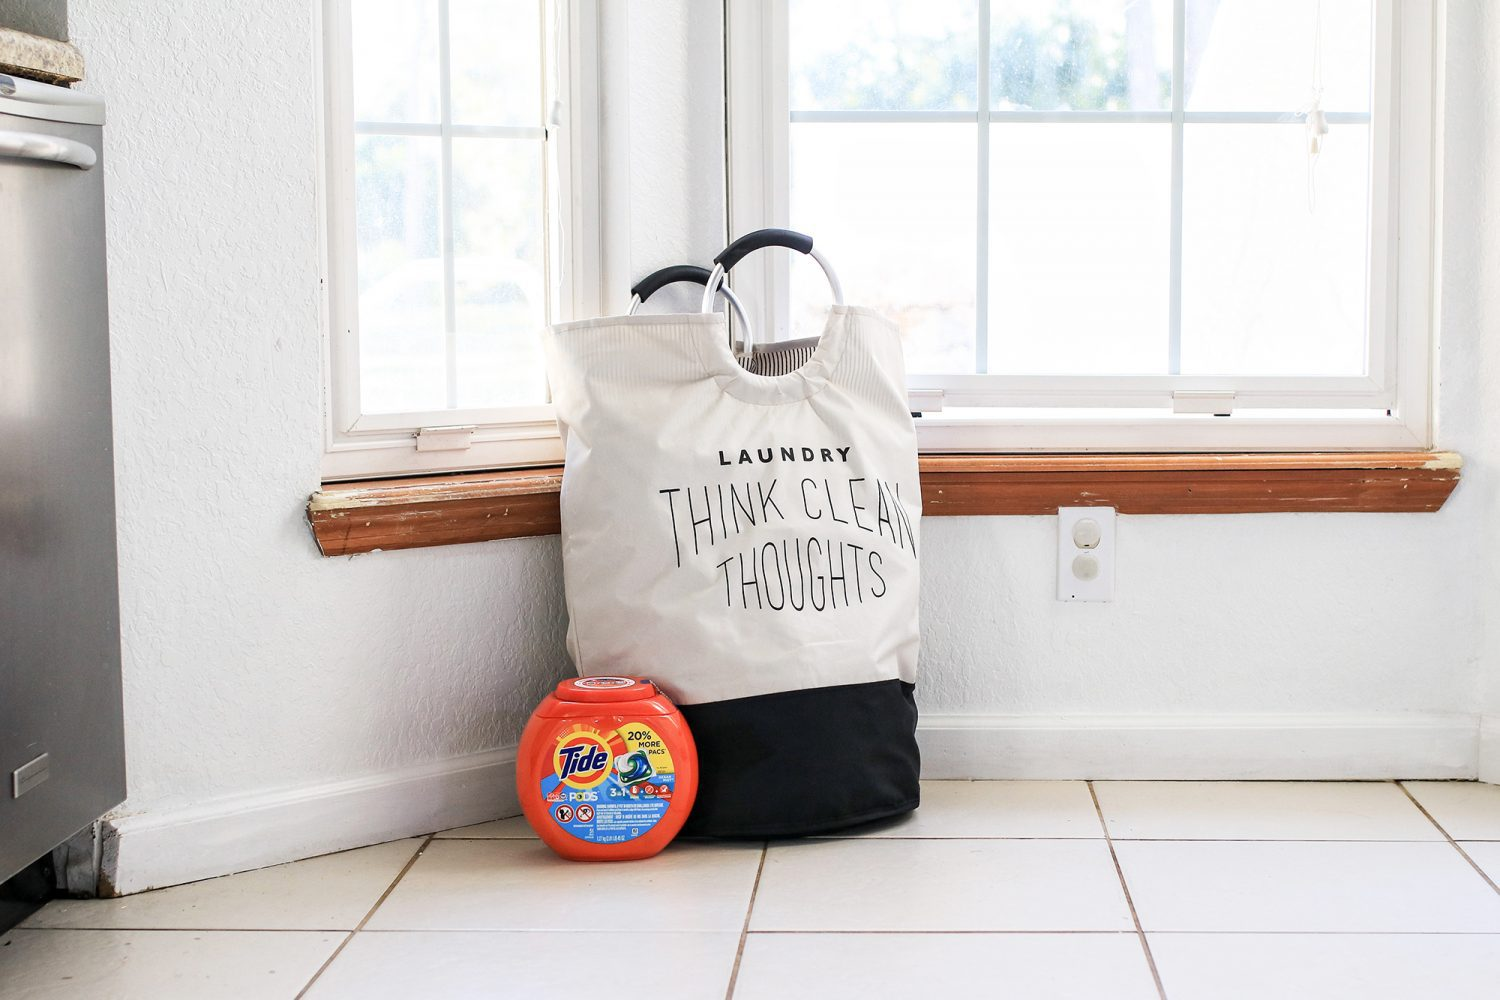 how to save money at target, target, coupons, couponing, saving money, budget, shopping on a budget, tide pods, coupon, printable coupon, tide, print at home, laundry, laundry detergent, 2019